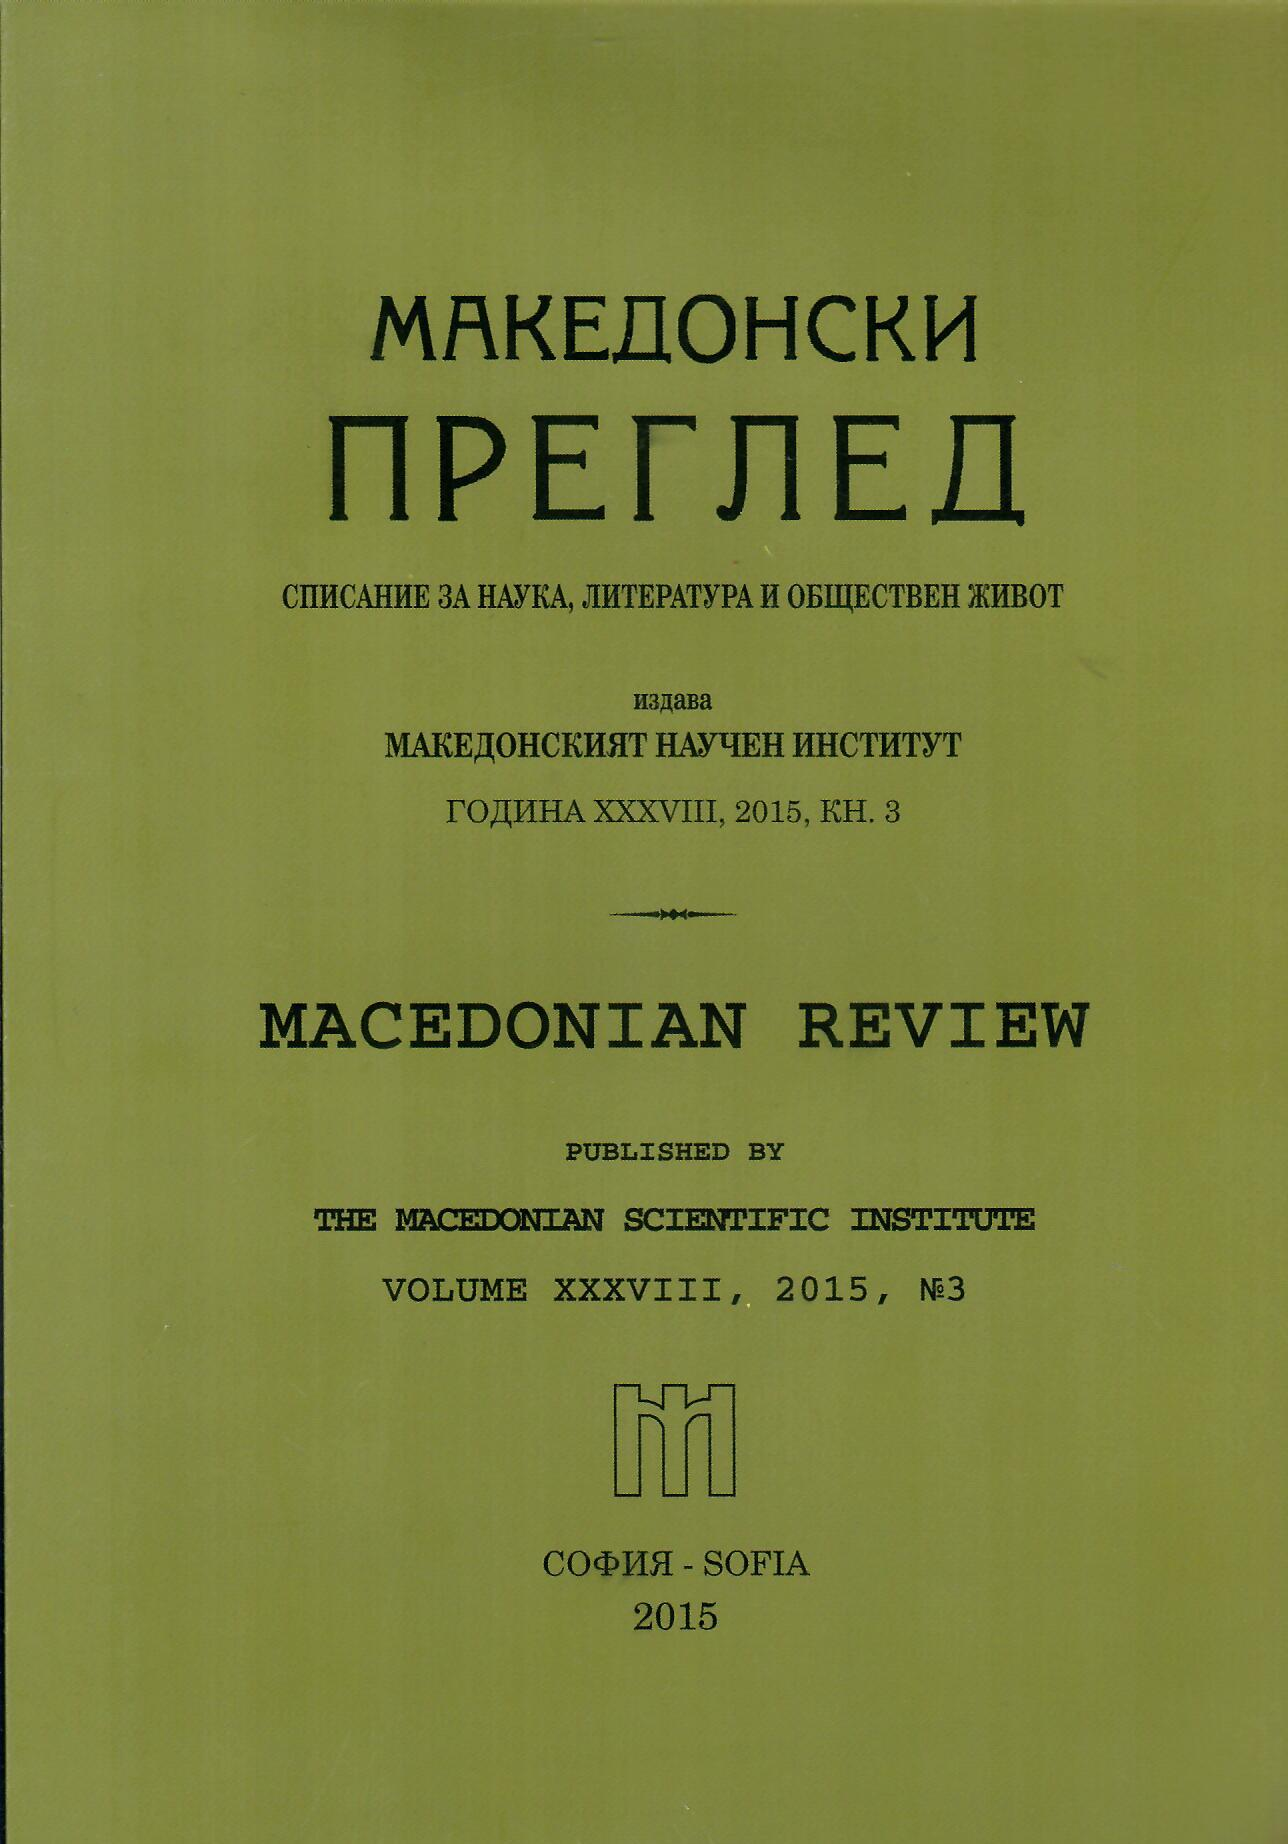 1895 Revolutionary Action in Macedonia